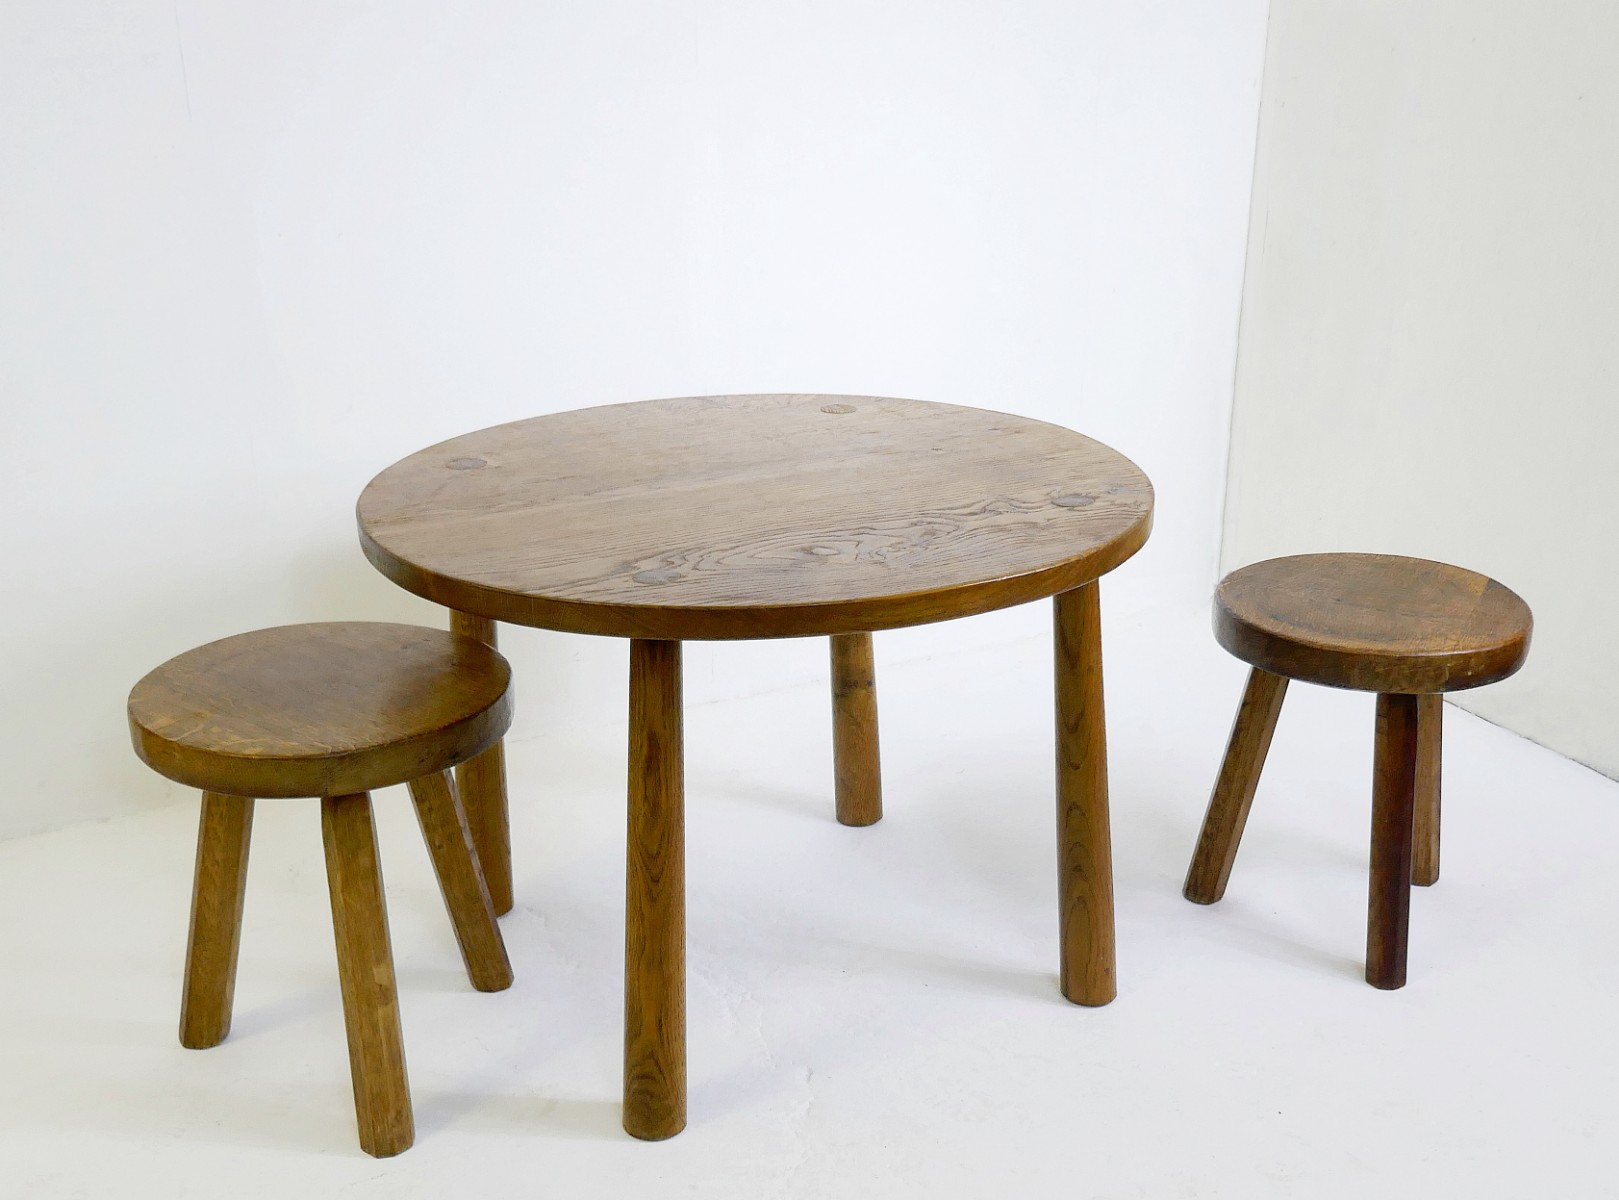 Solid Wood Small Round Table Stools Sold Separately Stools Search Results European Antiques Decorative